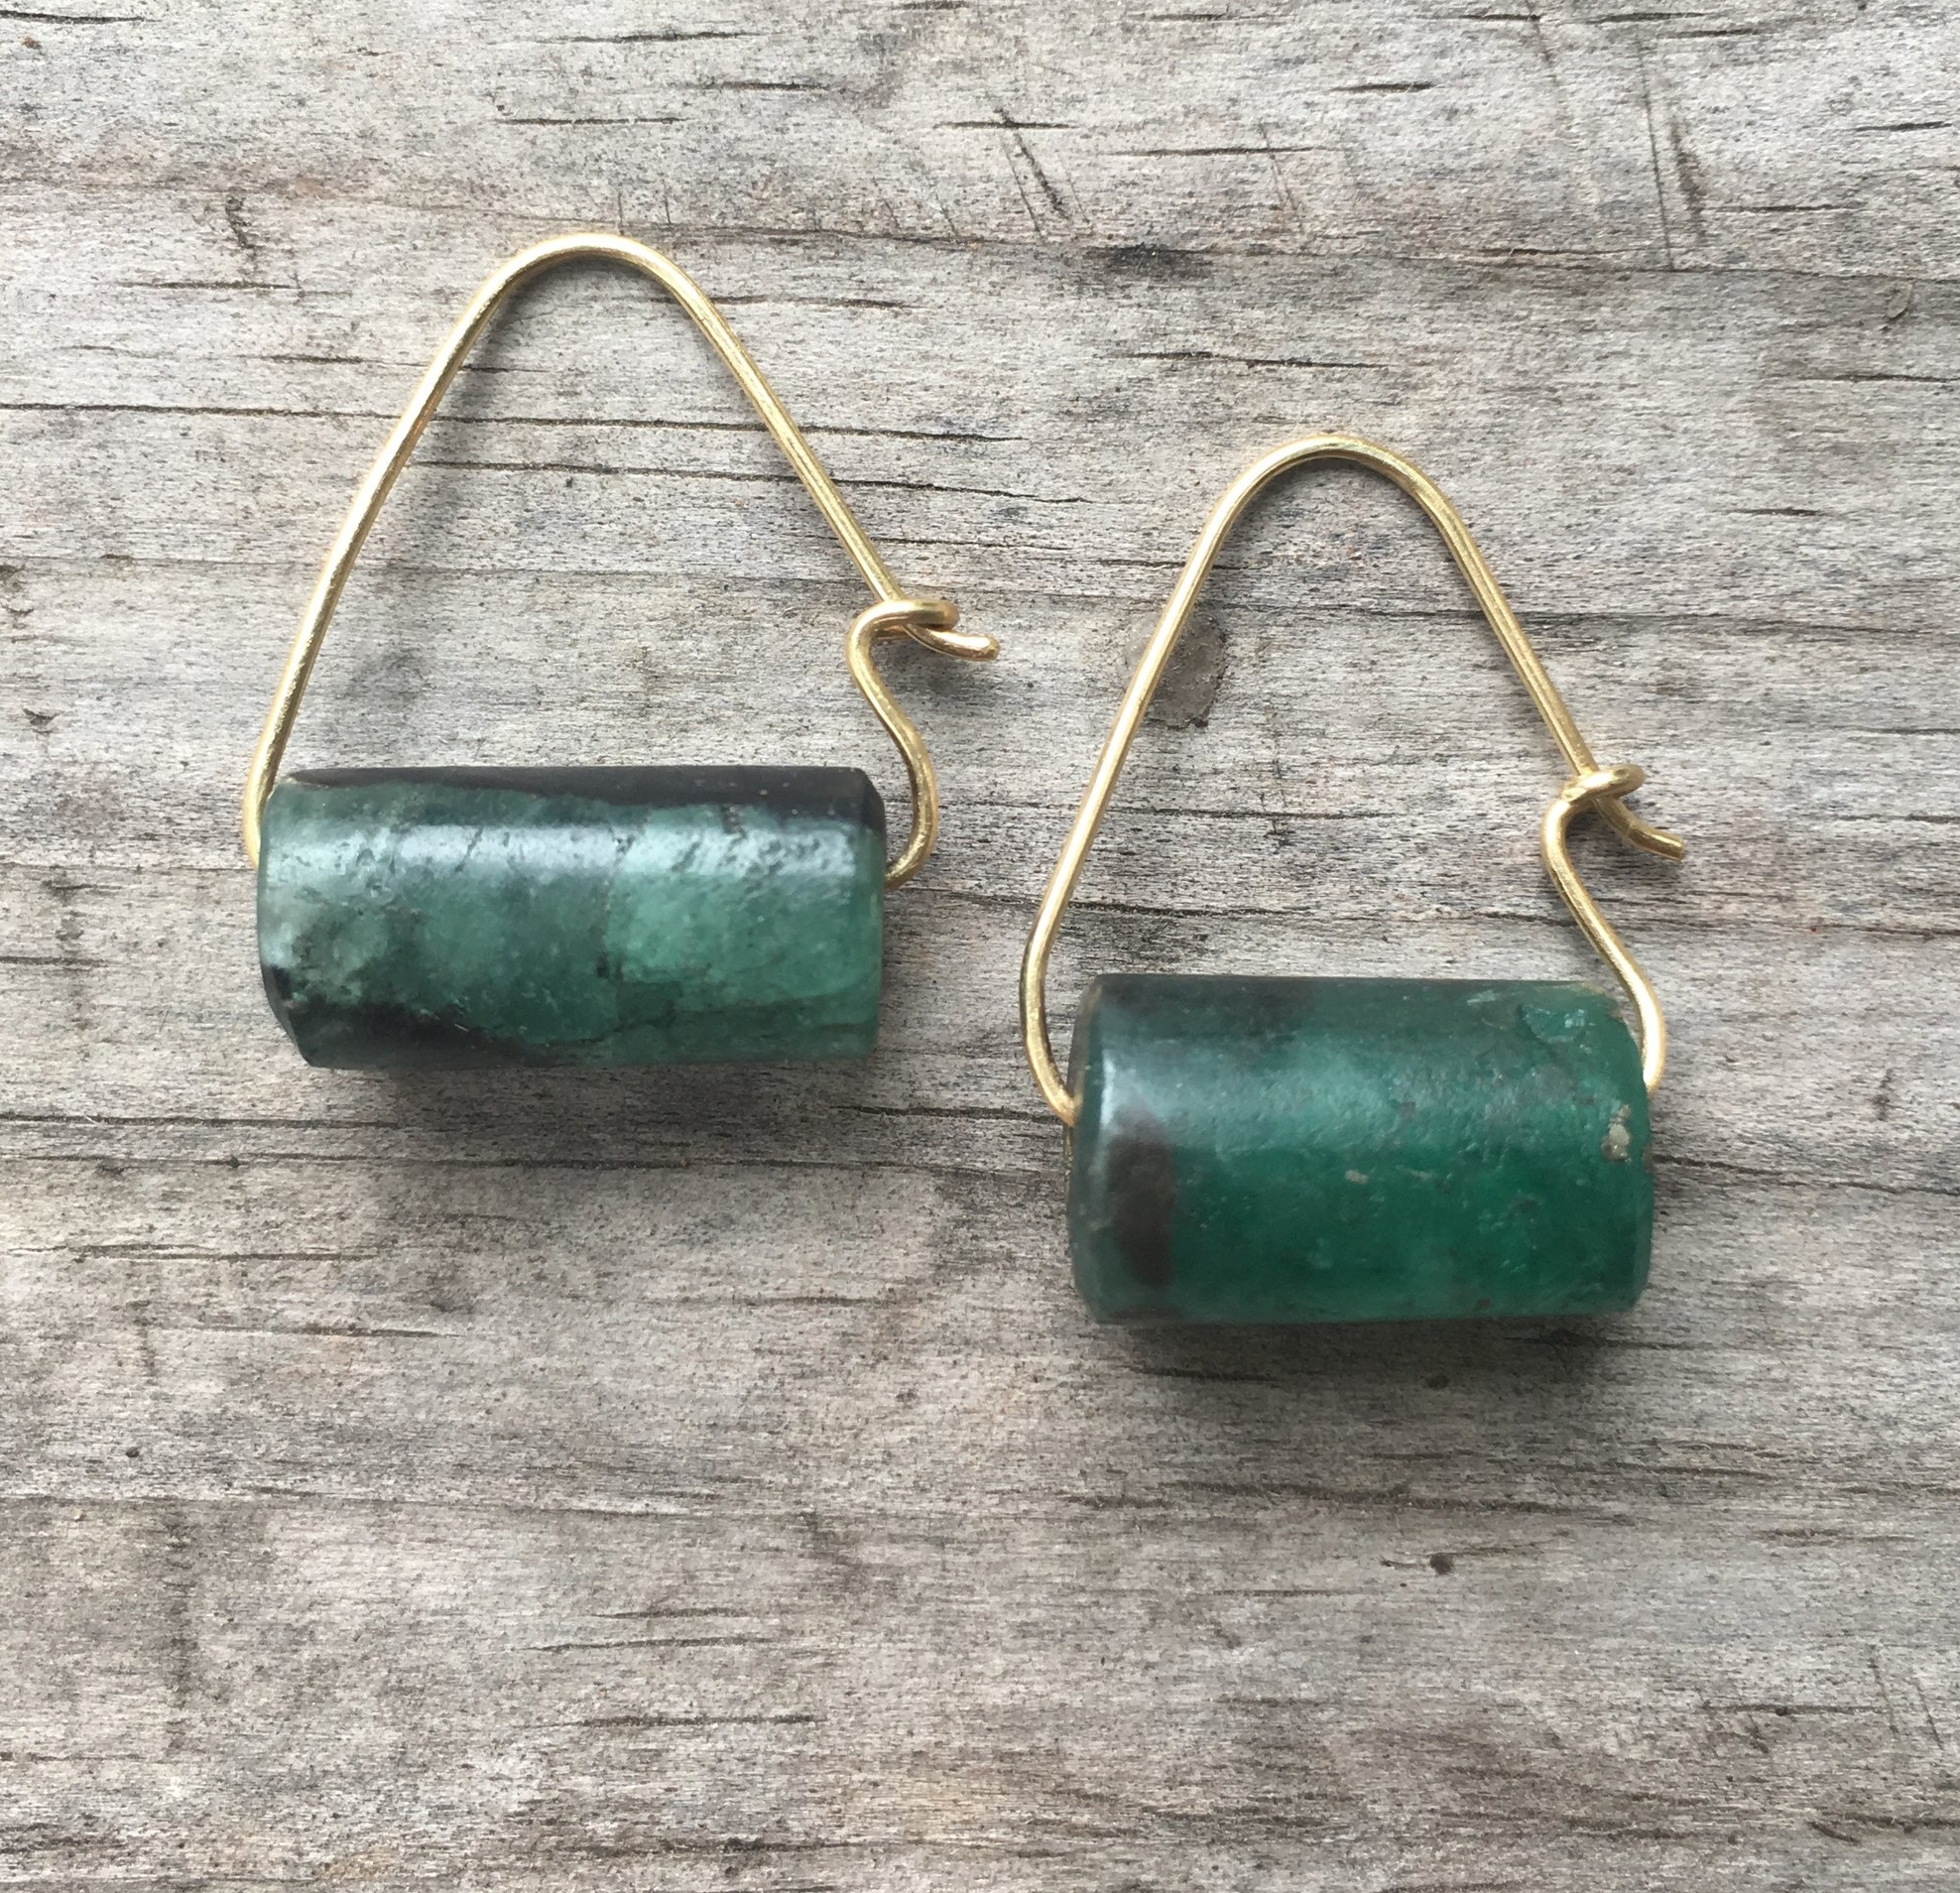 Raw Emerald, 18k yg earrings